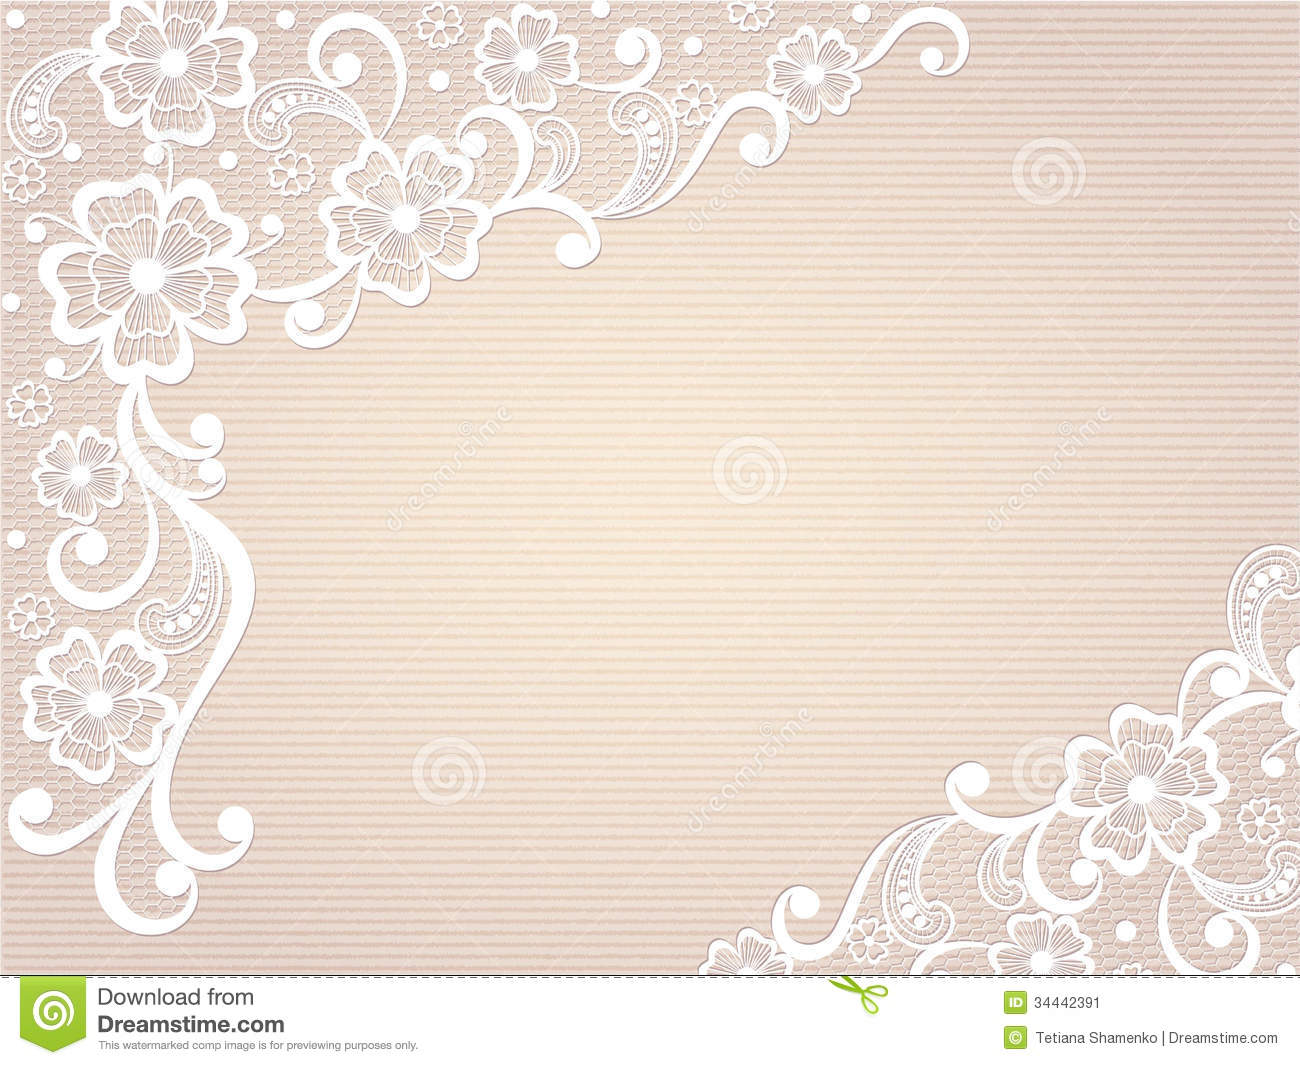 Template Frame Design For Card. Stock Image - Image: 34442391